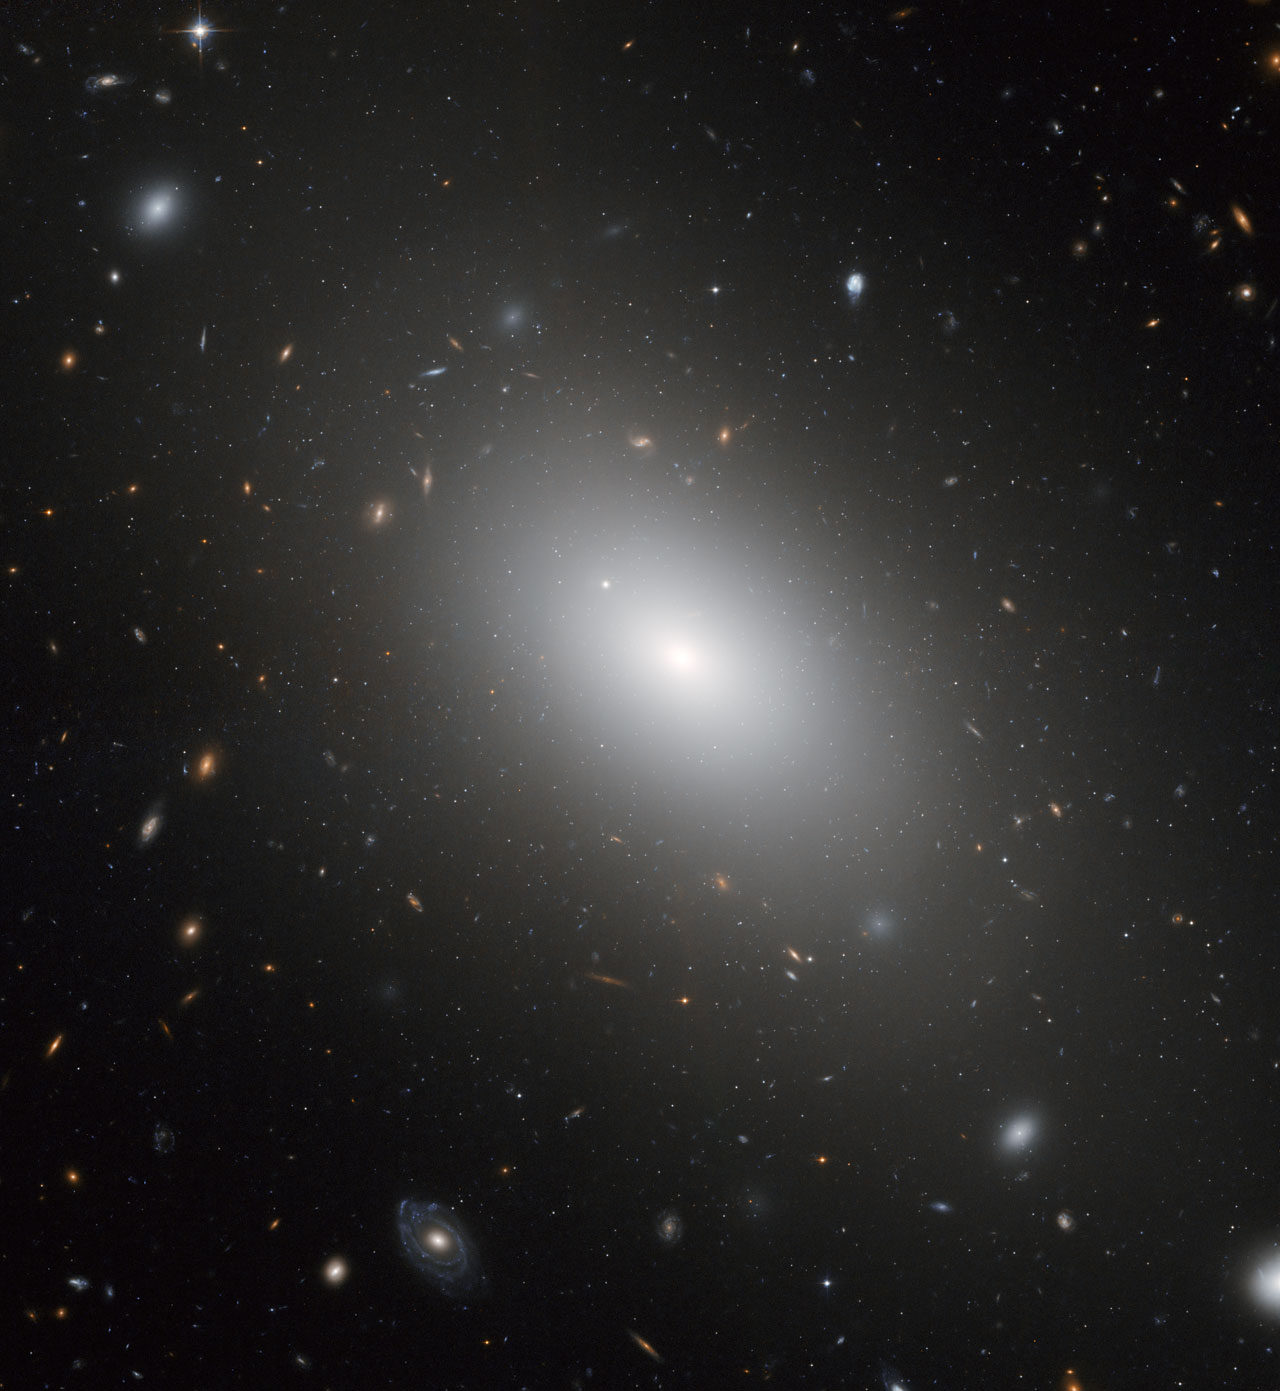 The Gargantuan Galaxy Ngc 1132 Esa Hubble